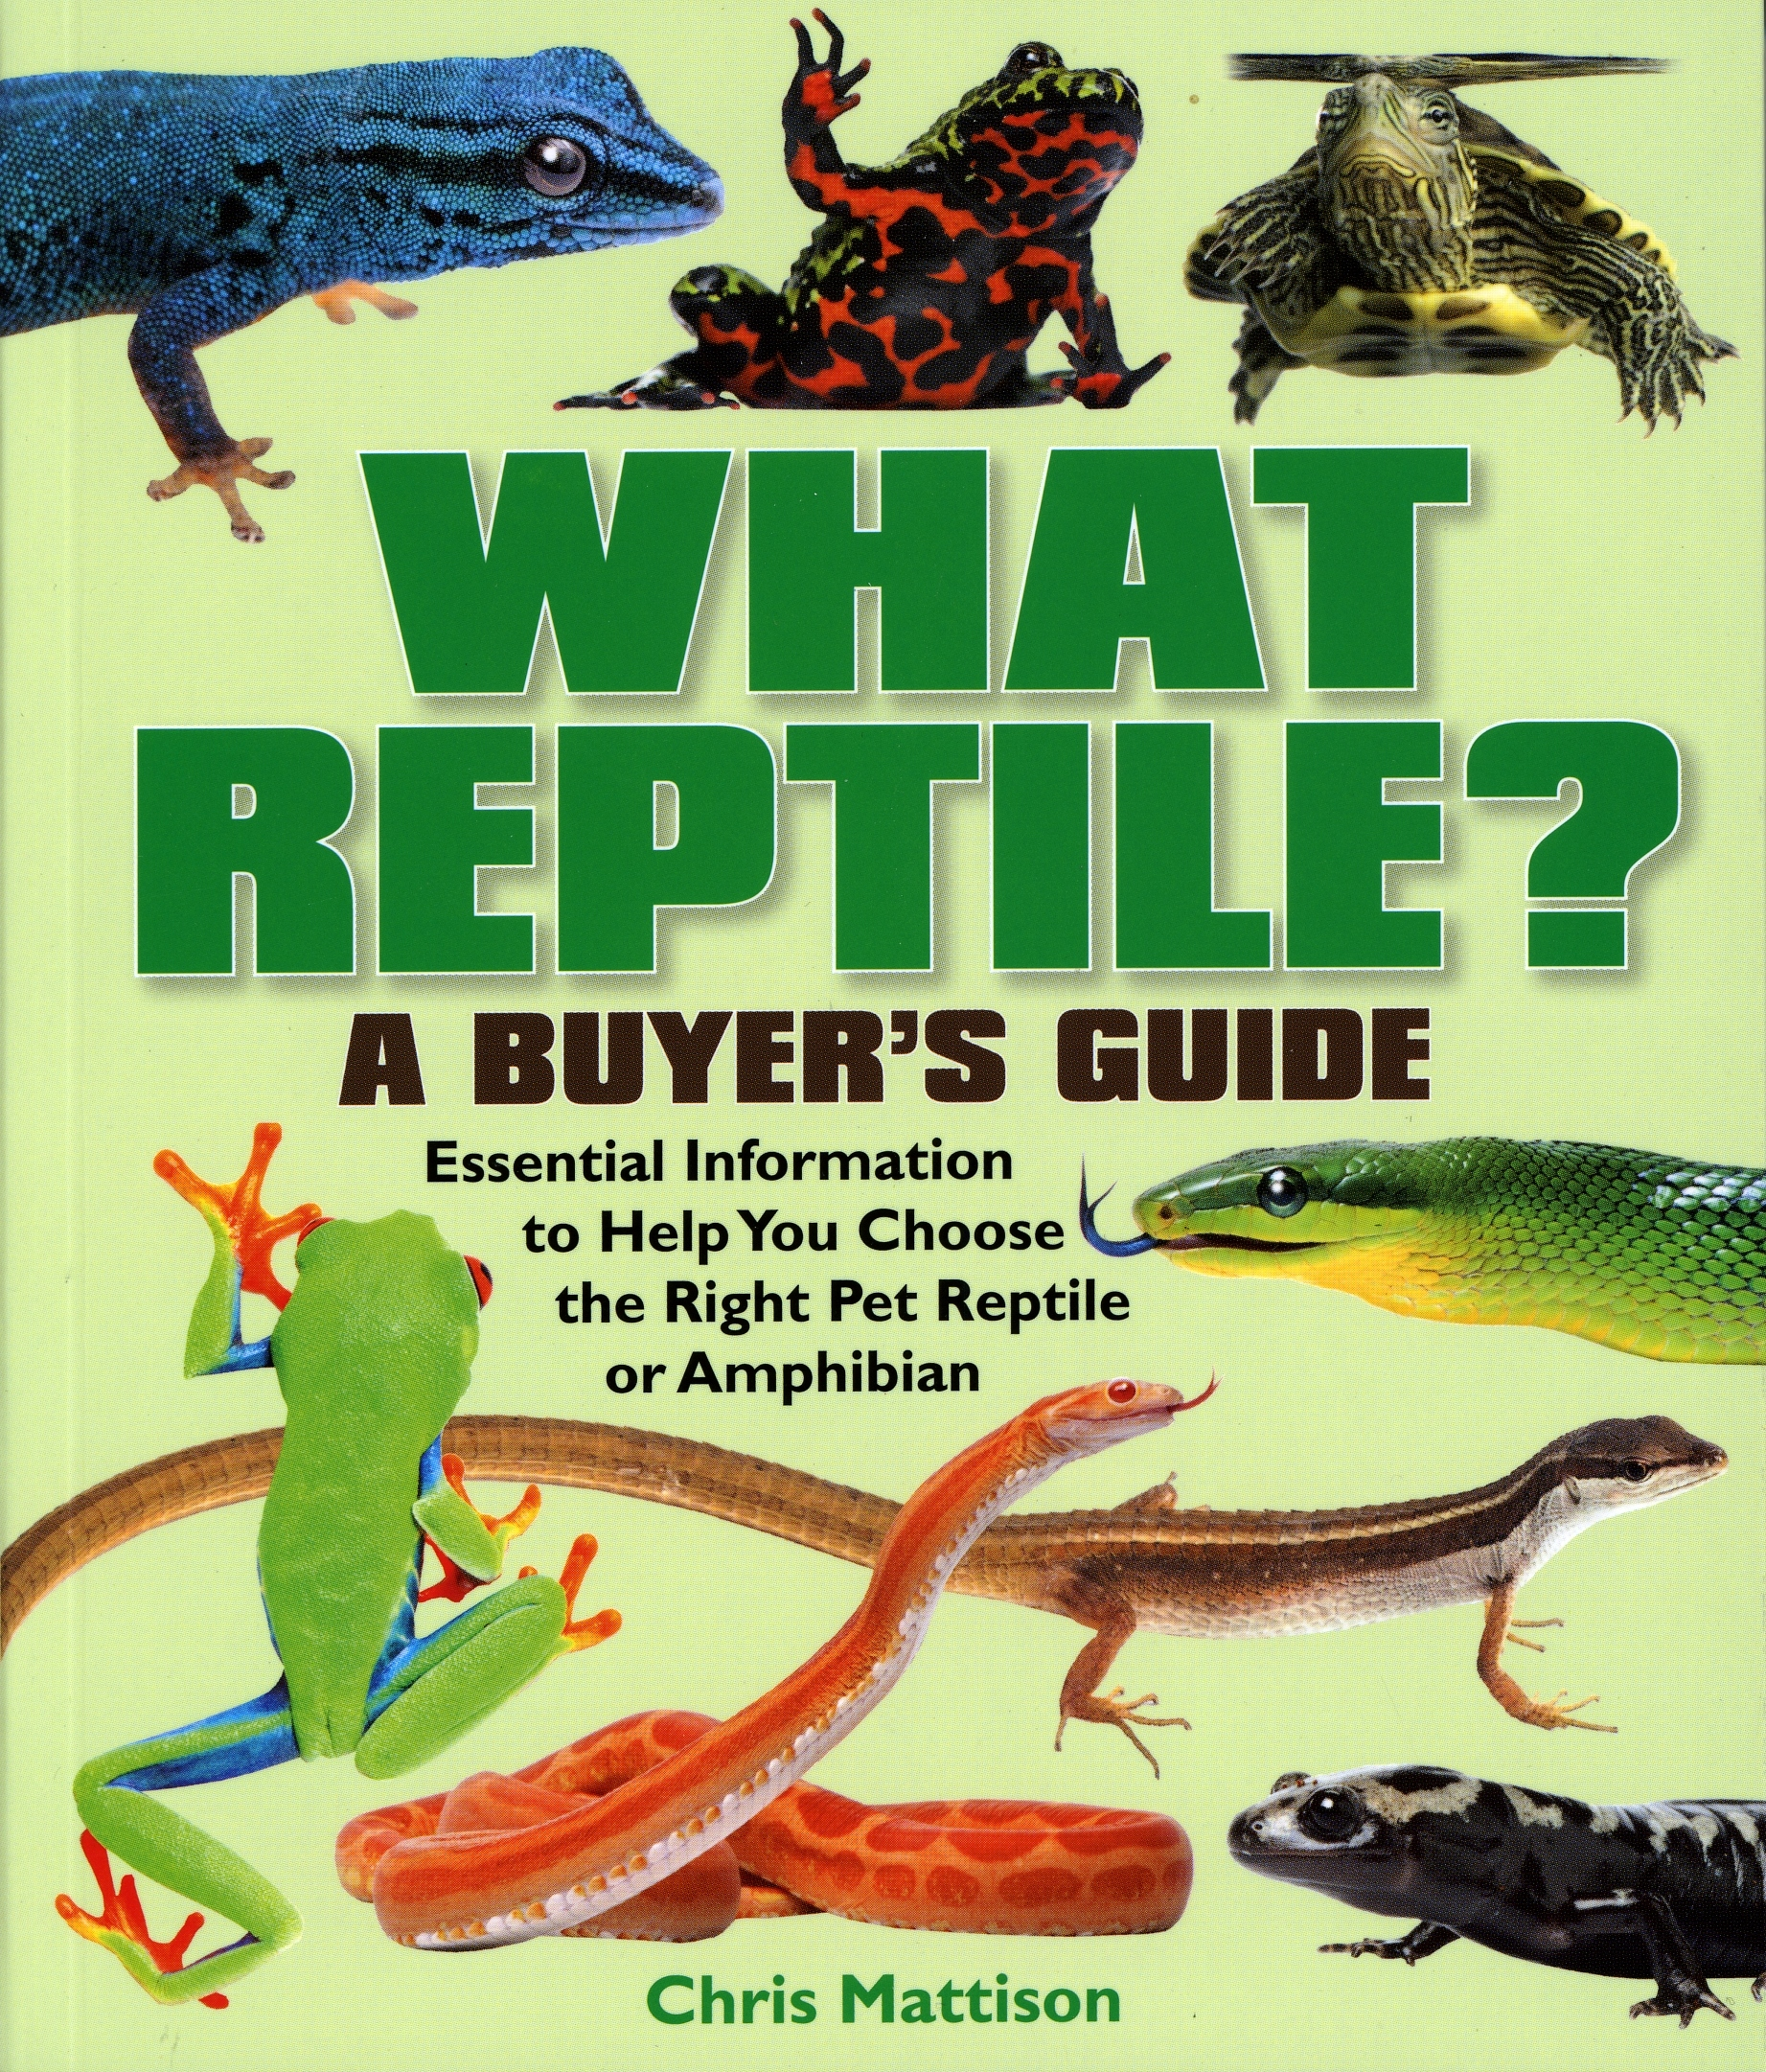 Interpet What Reptile? Encyclopedia